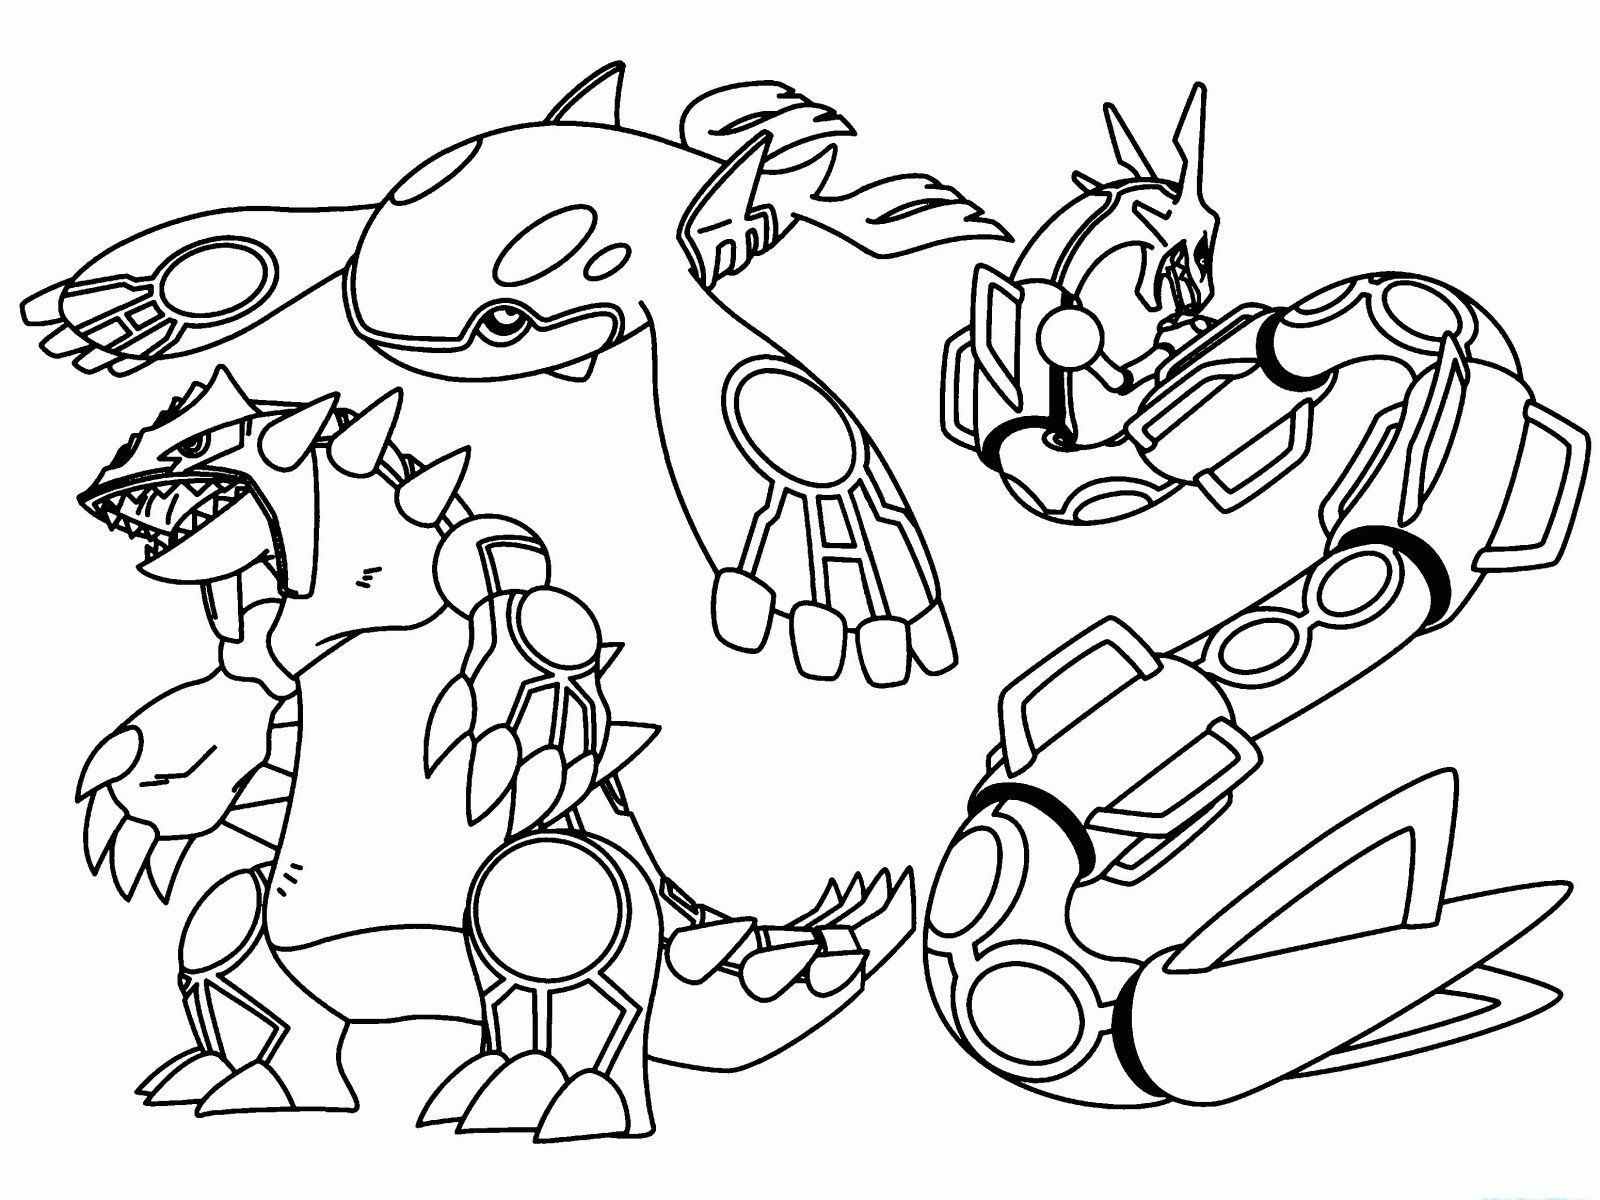 Legendary Pokemon Coloring Pages Unique Mandala Pokemon Ausdrucken